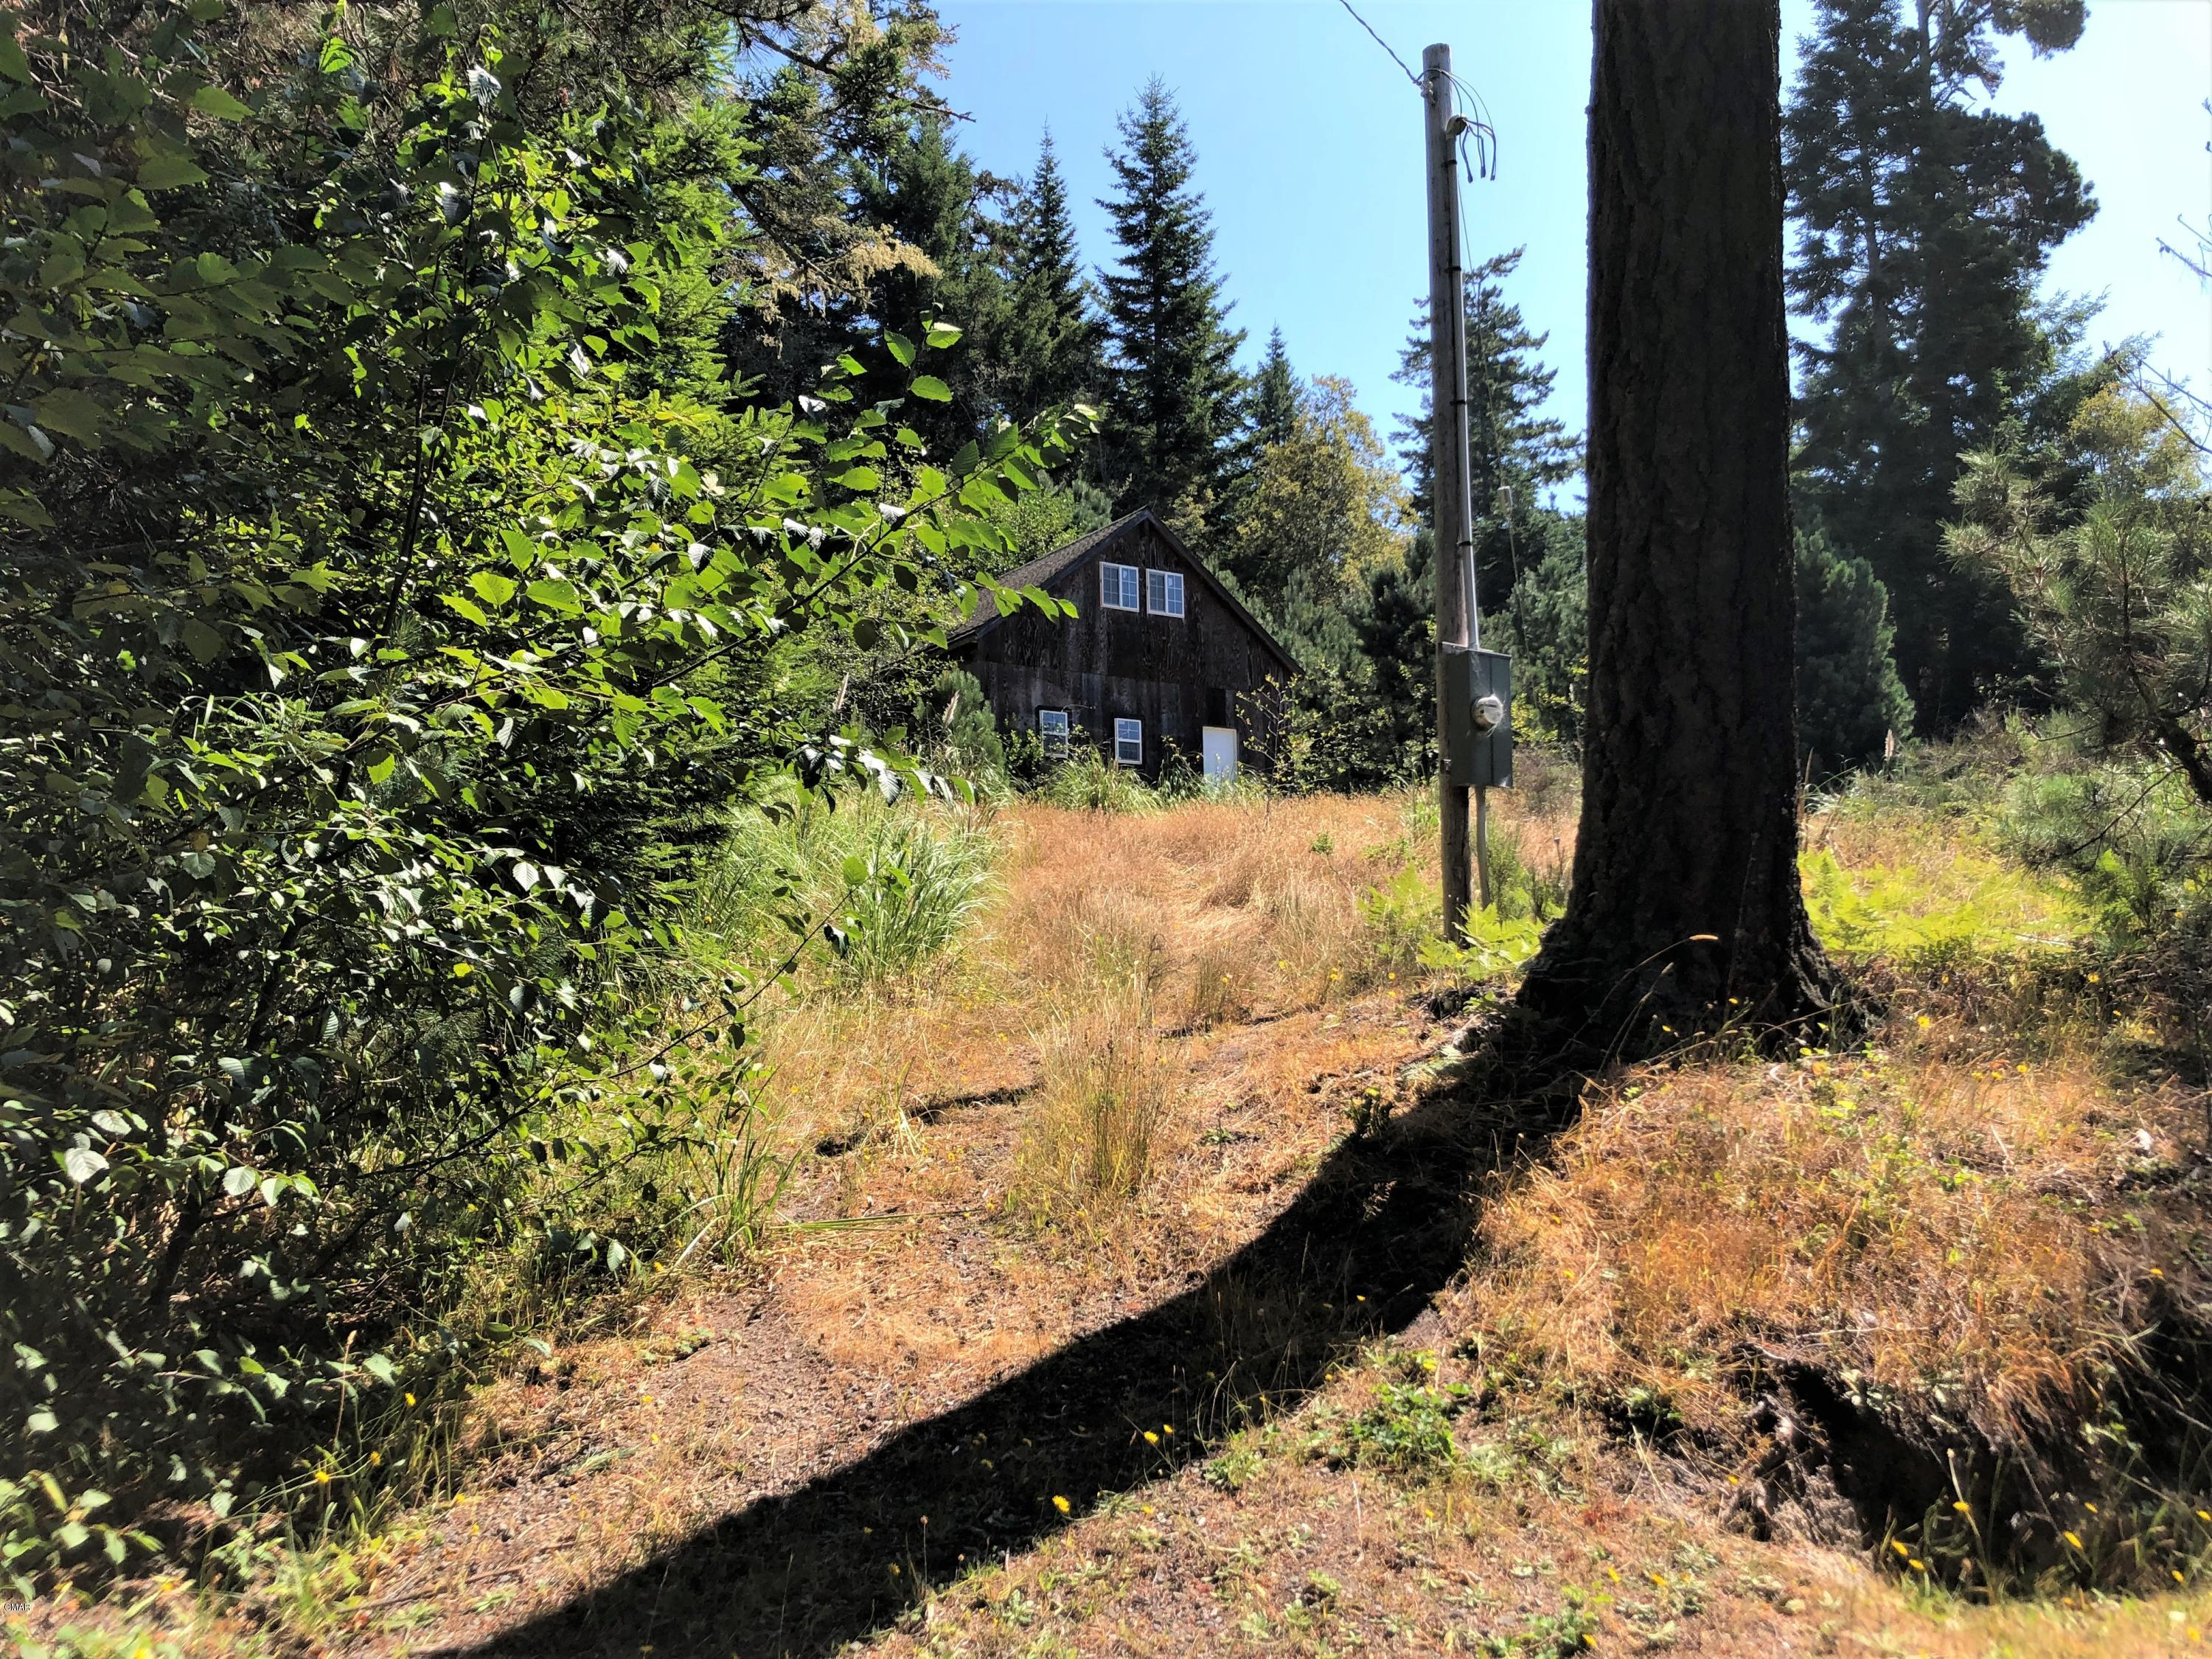 A perfect place to build that special home. A 625 sf garage has been enclosed but needs finish work. The parcel offers a private and peaceful setting of meadows and trees. Septic permit is active. Mutual water and power are in.  Explore adjacent state lands or Mendocino village which is just down the hill.